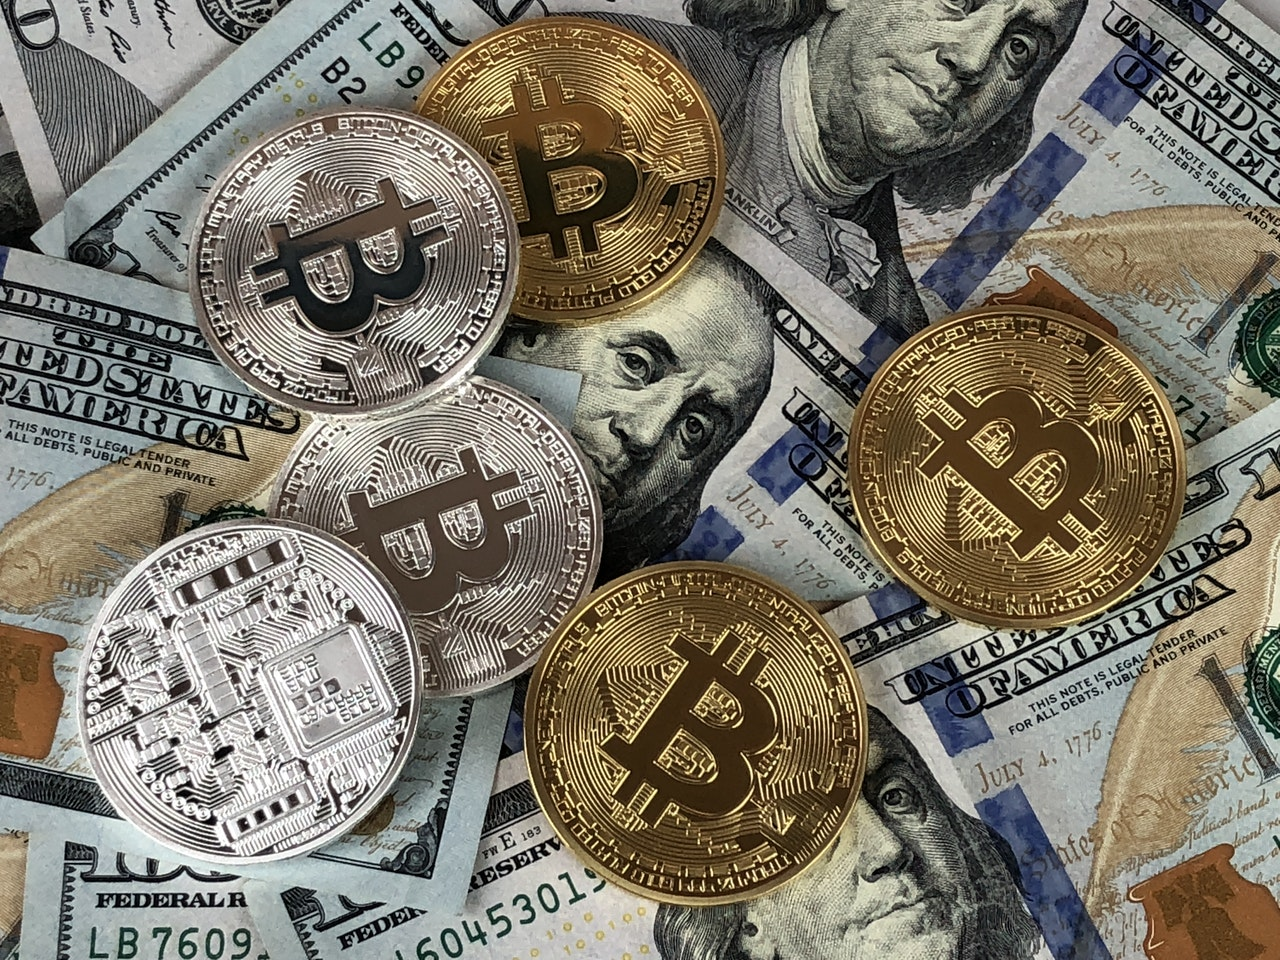 Bitcoin Scam: Gelfman Blueprint and CEO Charged $2 5 Million by CFTC